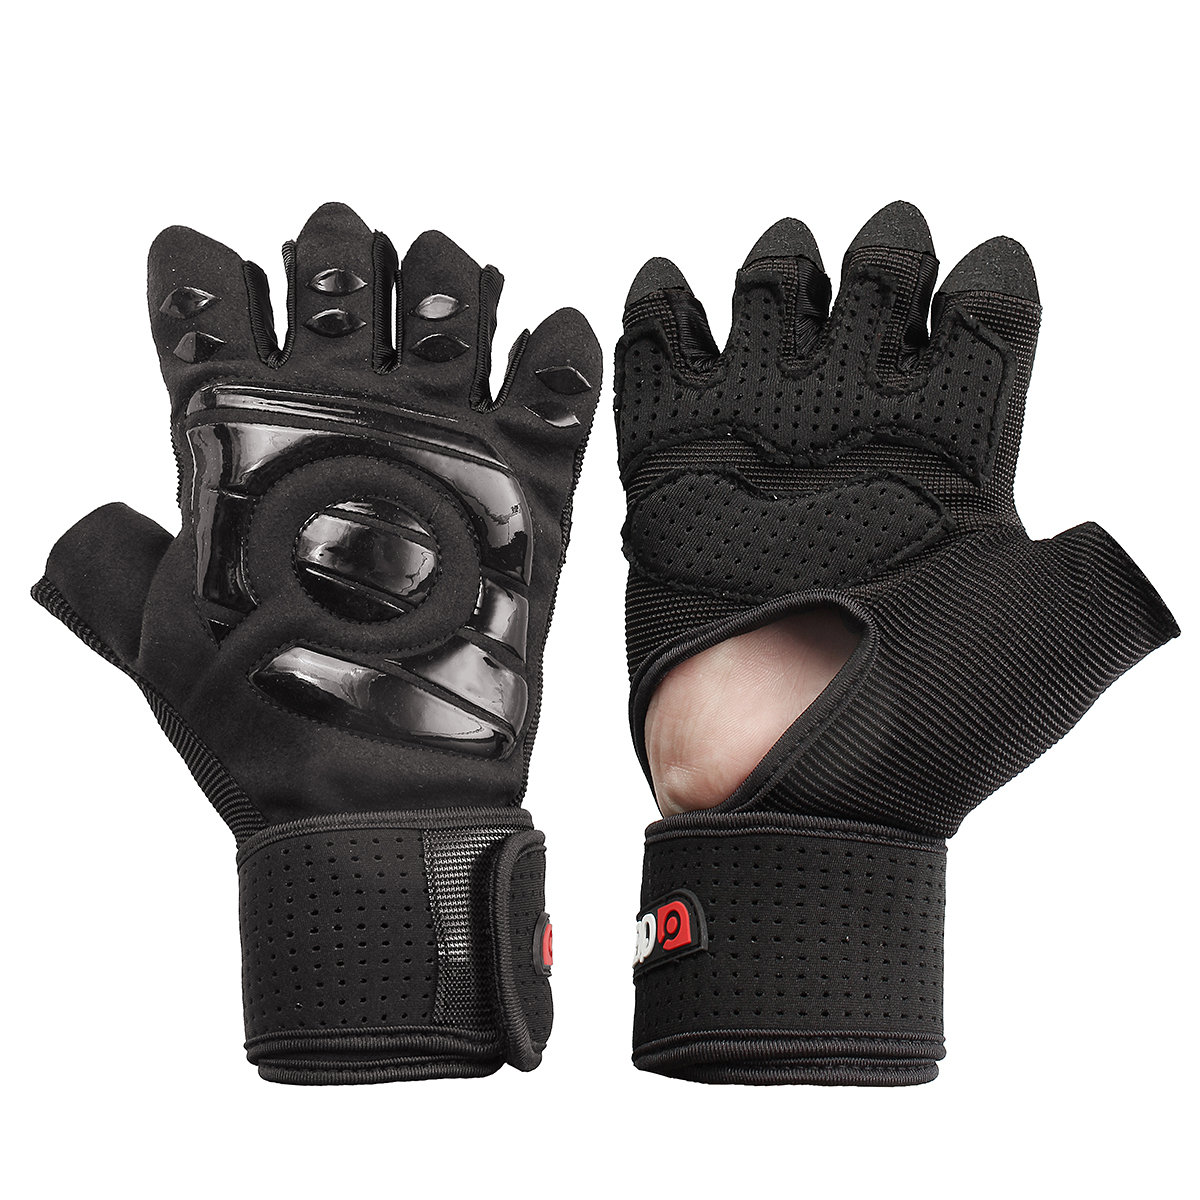 Aqf Weight Lifting Gloves Ultralight Breathable Gym Gloves: Anti-Skid Wrist Half Finger Sport Lifting Gloves Gym